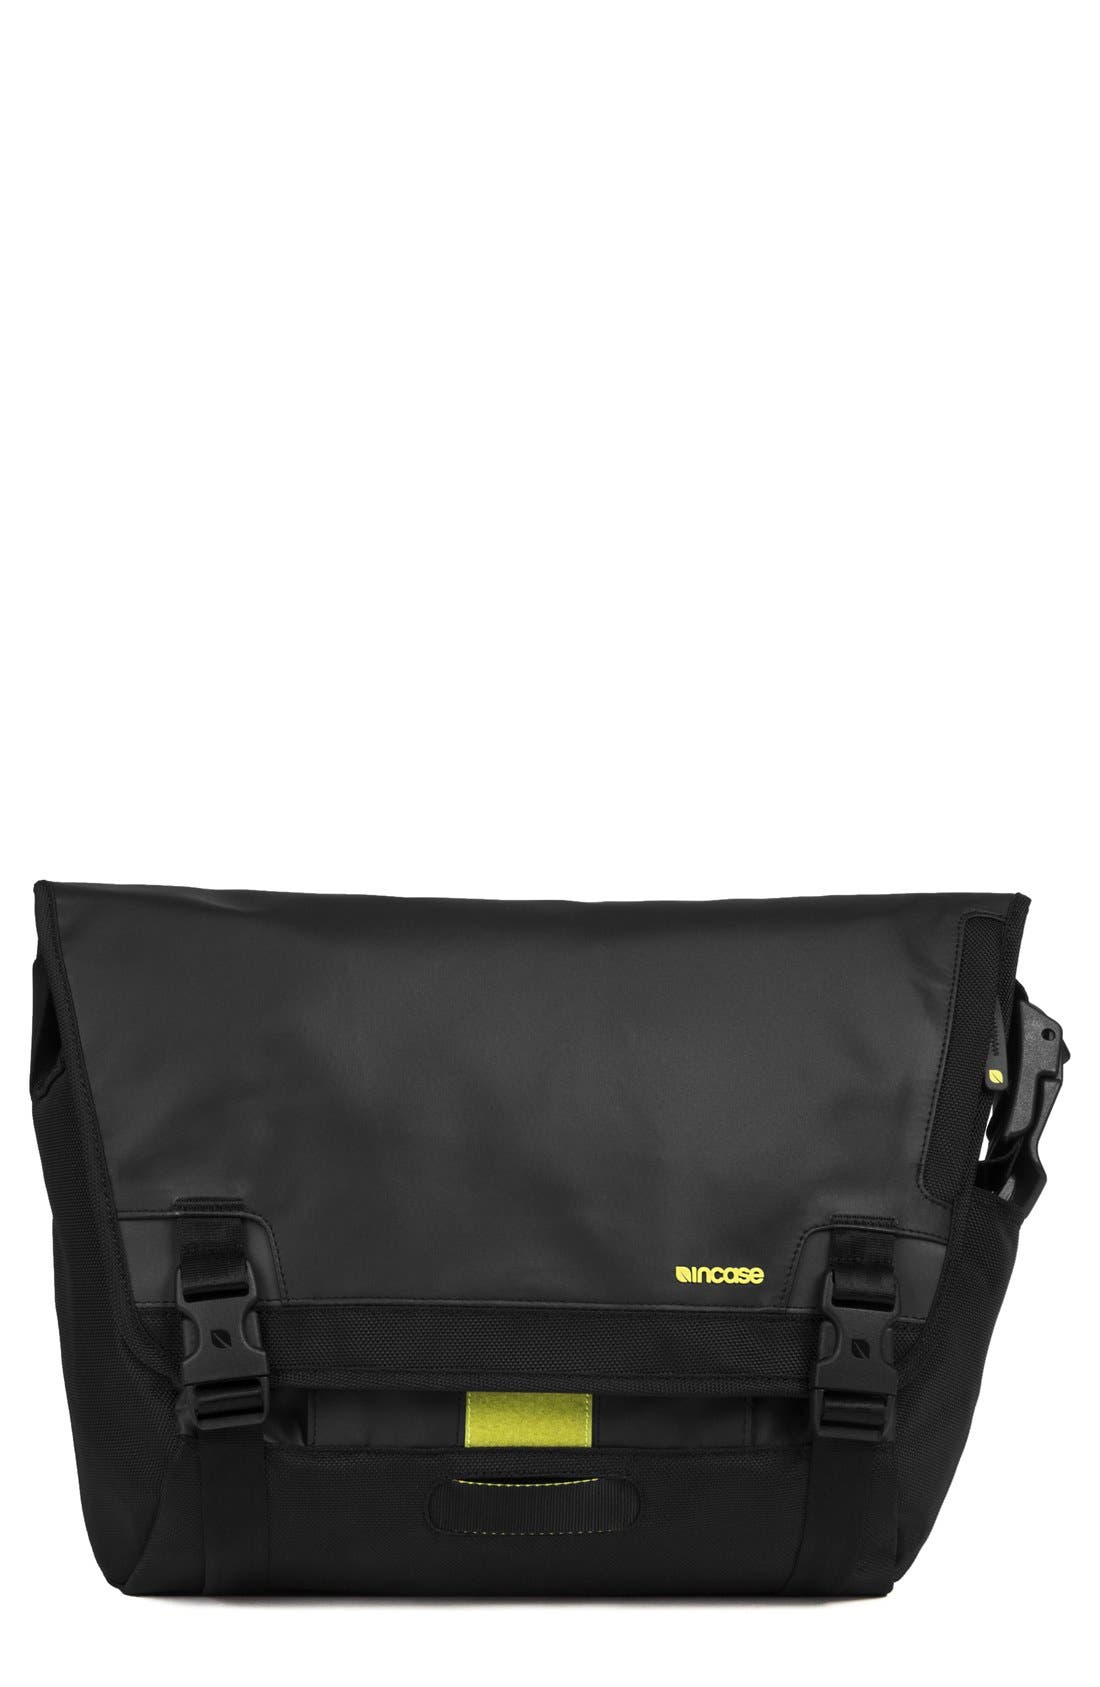 INCASE DESIGNS Range Messenger Bag